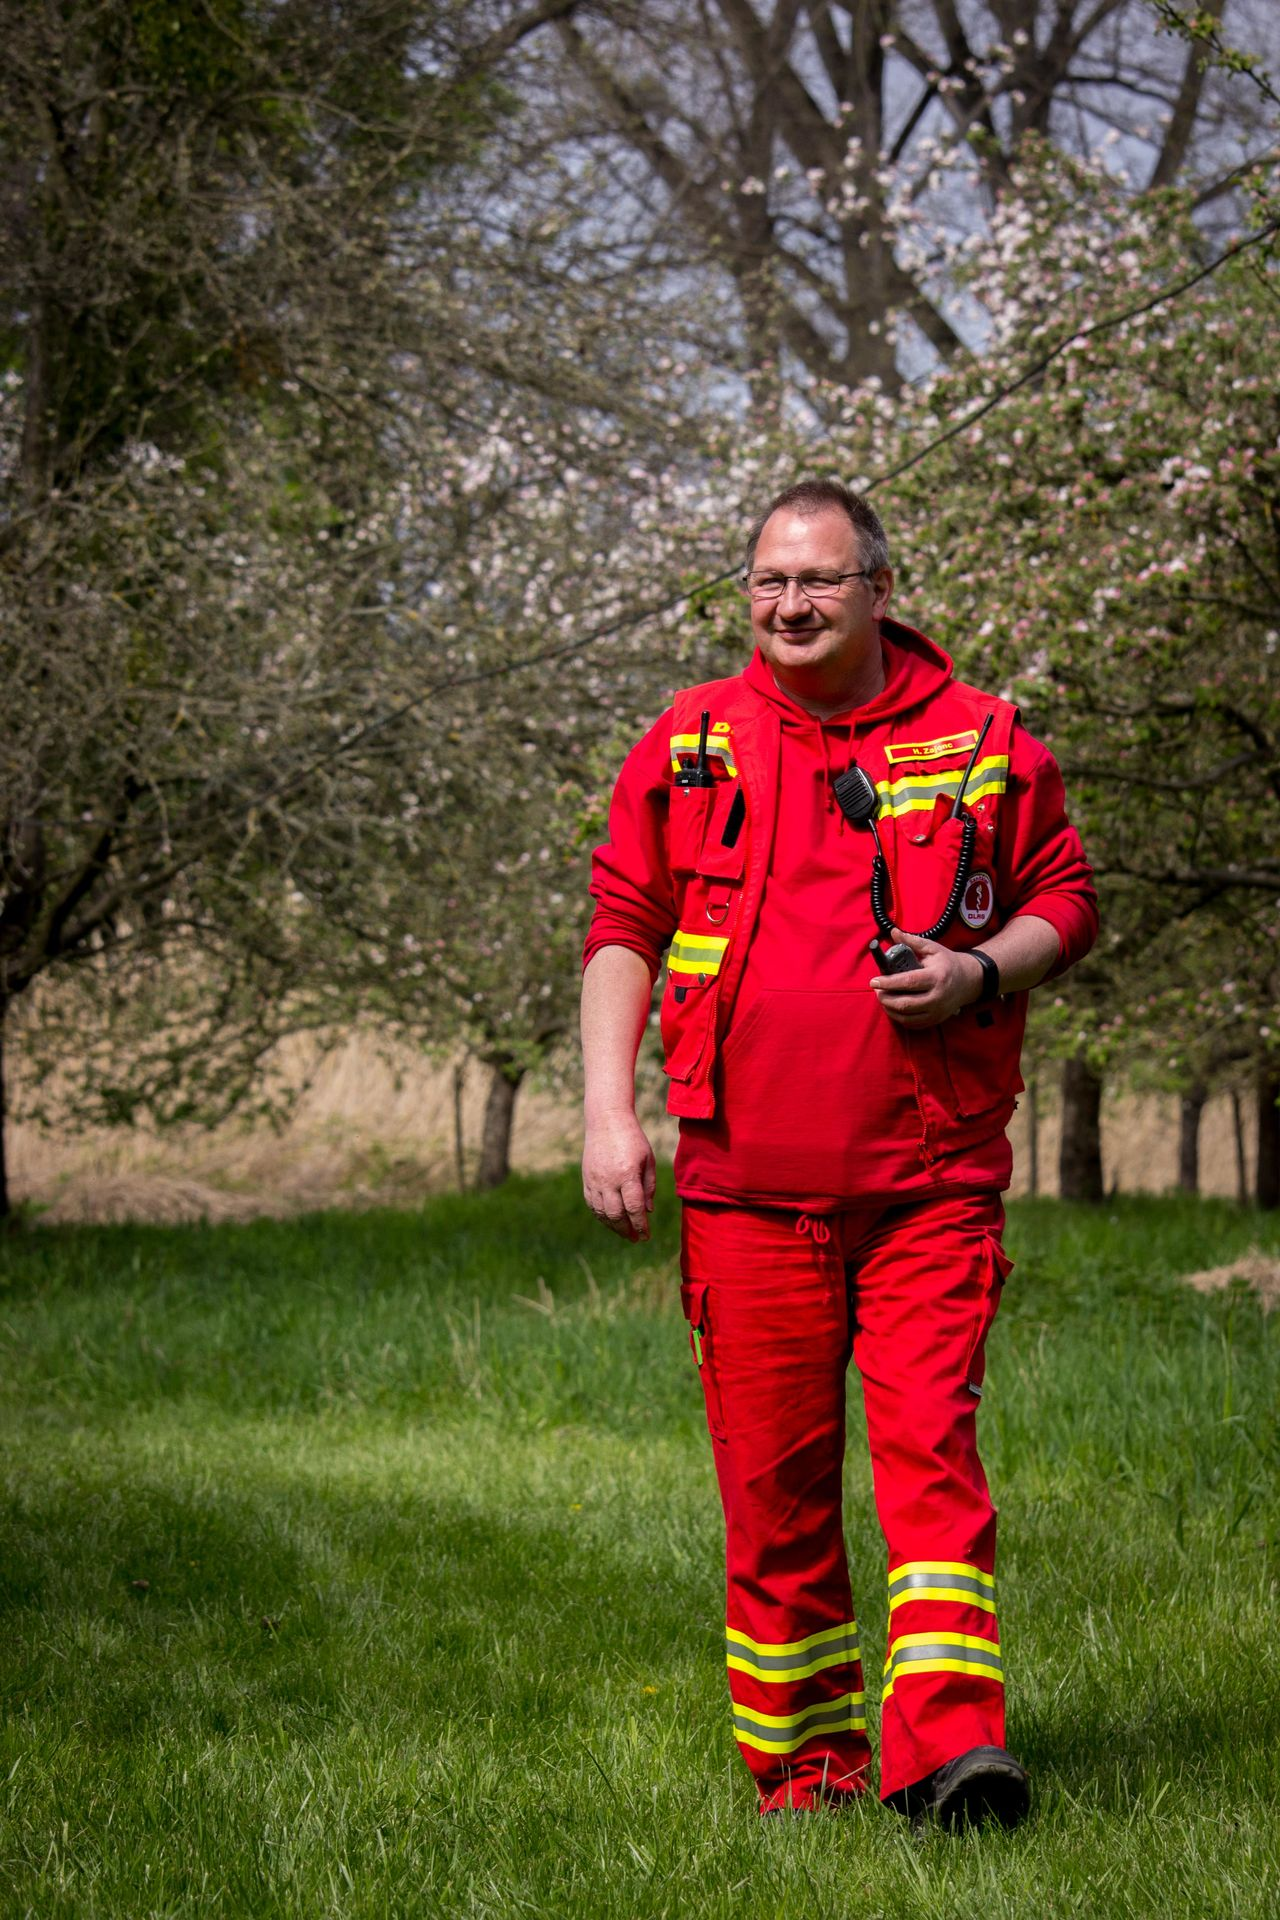 Day Deutsche Lebens-Rettungs-Gesellschaft DLRG DLRG Nieder-Olm Wörrstadt Happiness Lifeguard  Livesaving One Man Only One Person Only Men Outdoors People Red Smiling Sports Uniform